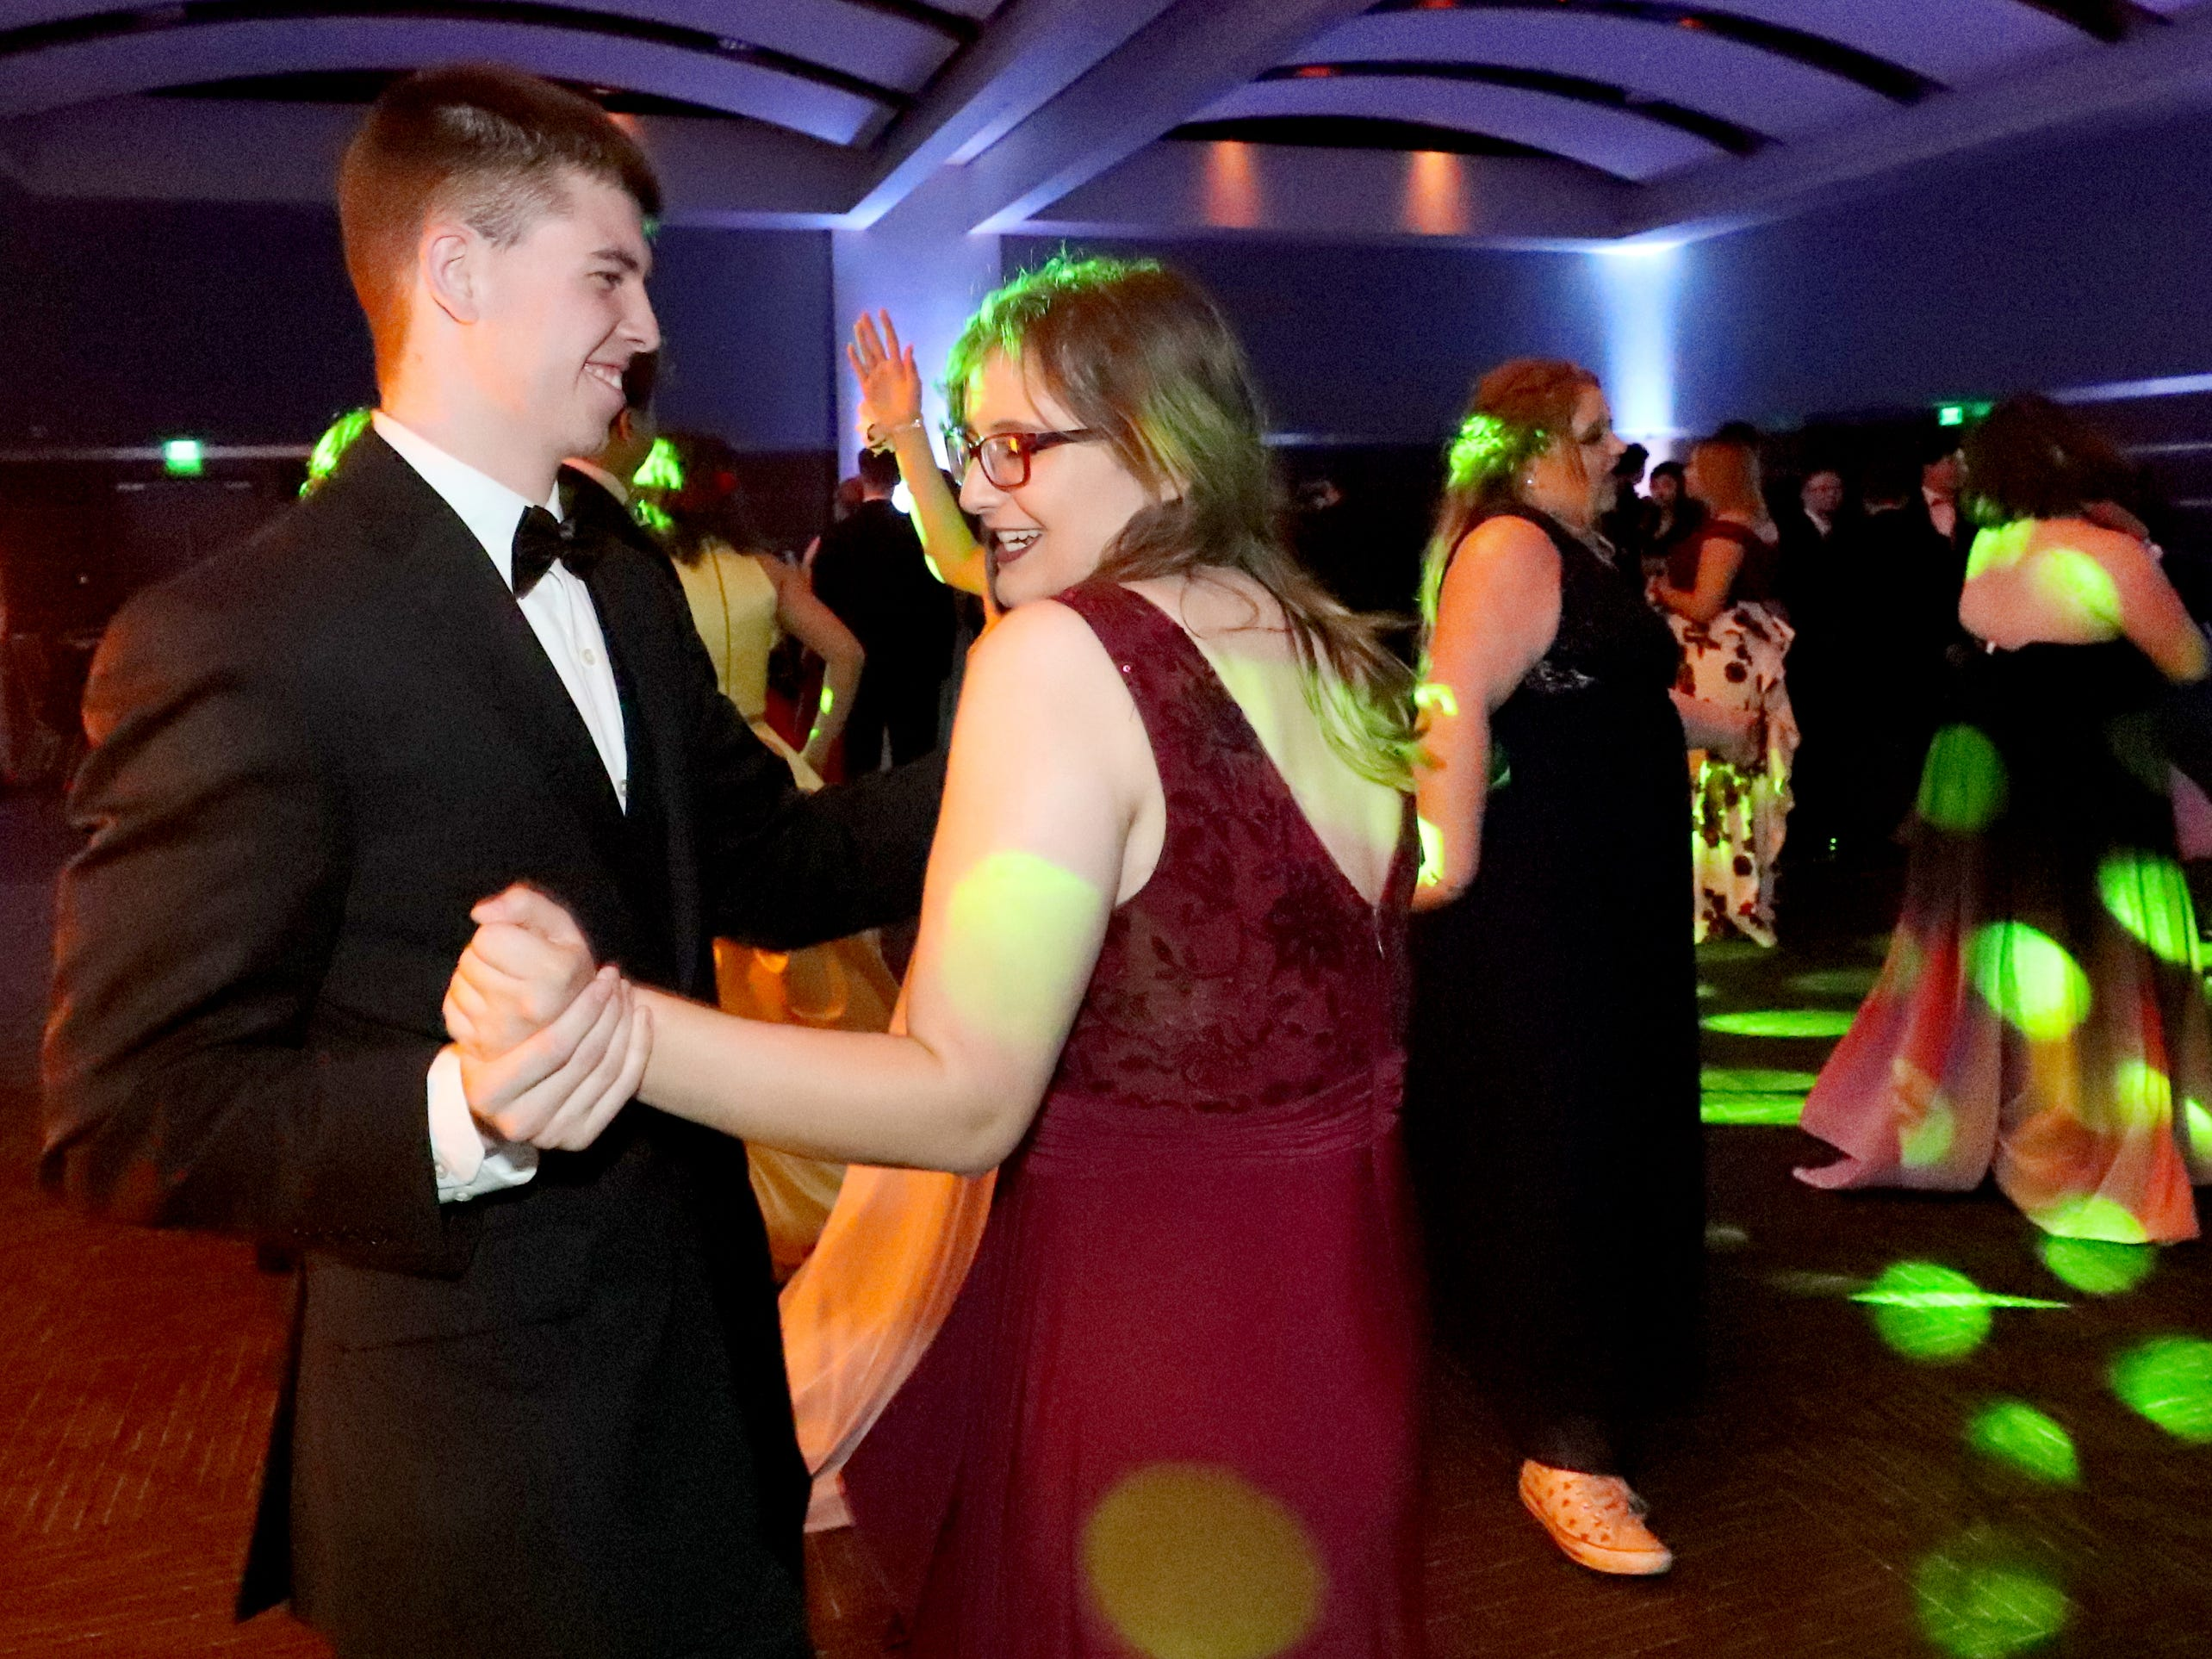 Nathan Bystrom, left and Lian Smith, right dance at Blackman's prom on Friday April 12, 2019, at MTSU.